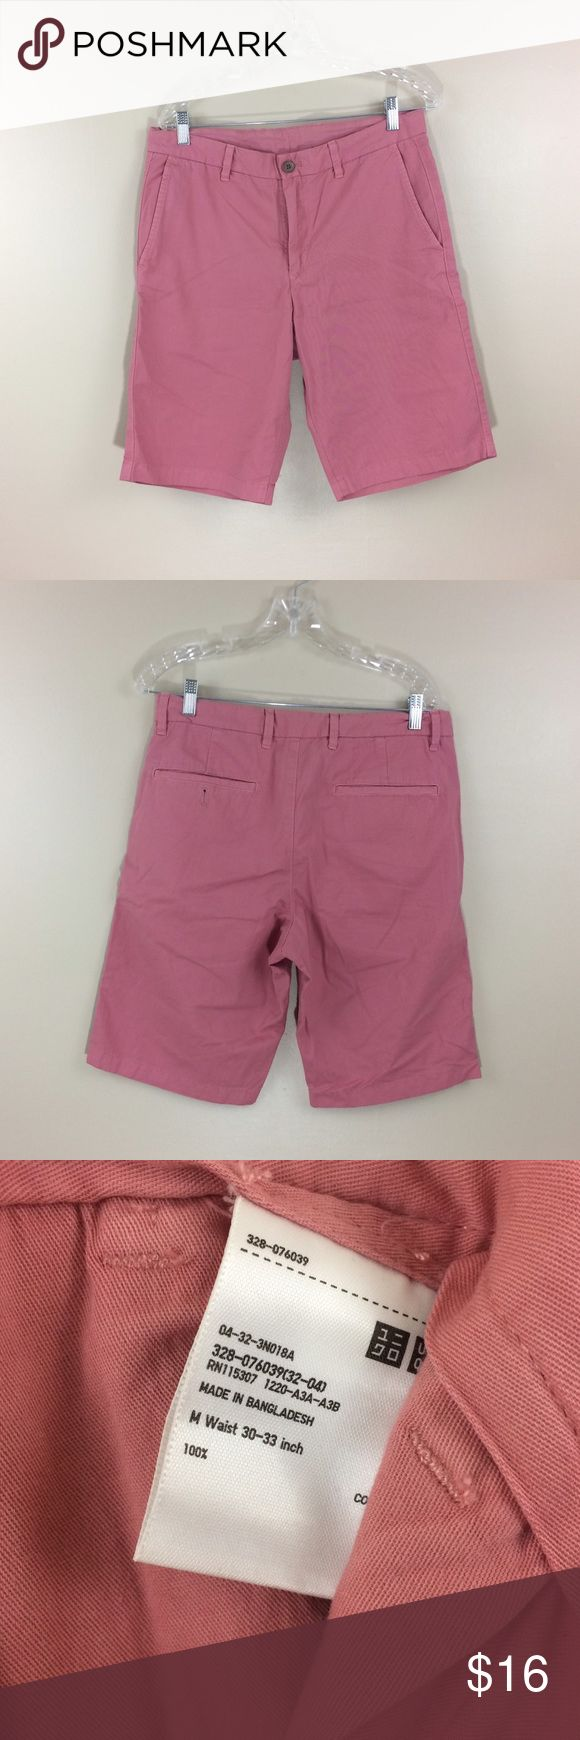 Uniqlo - faded pink - Shorts W30-33 Good condition no rip, hole or stains. Uniqlo Shorts Flat Front